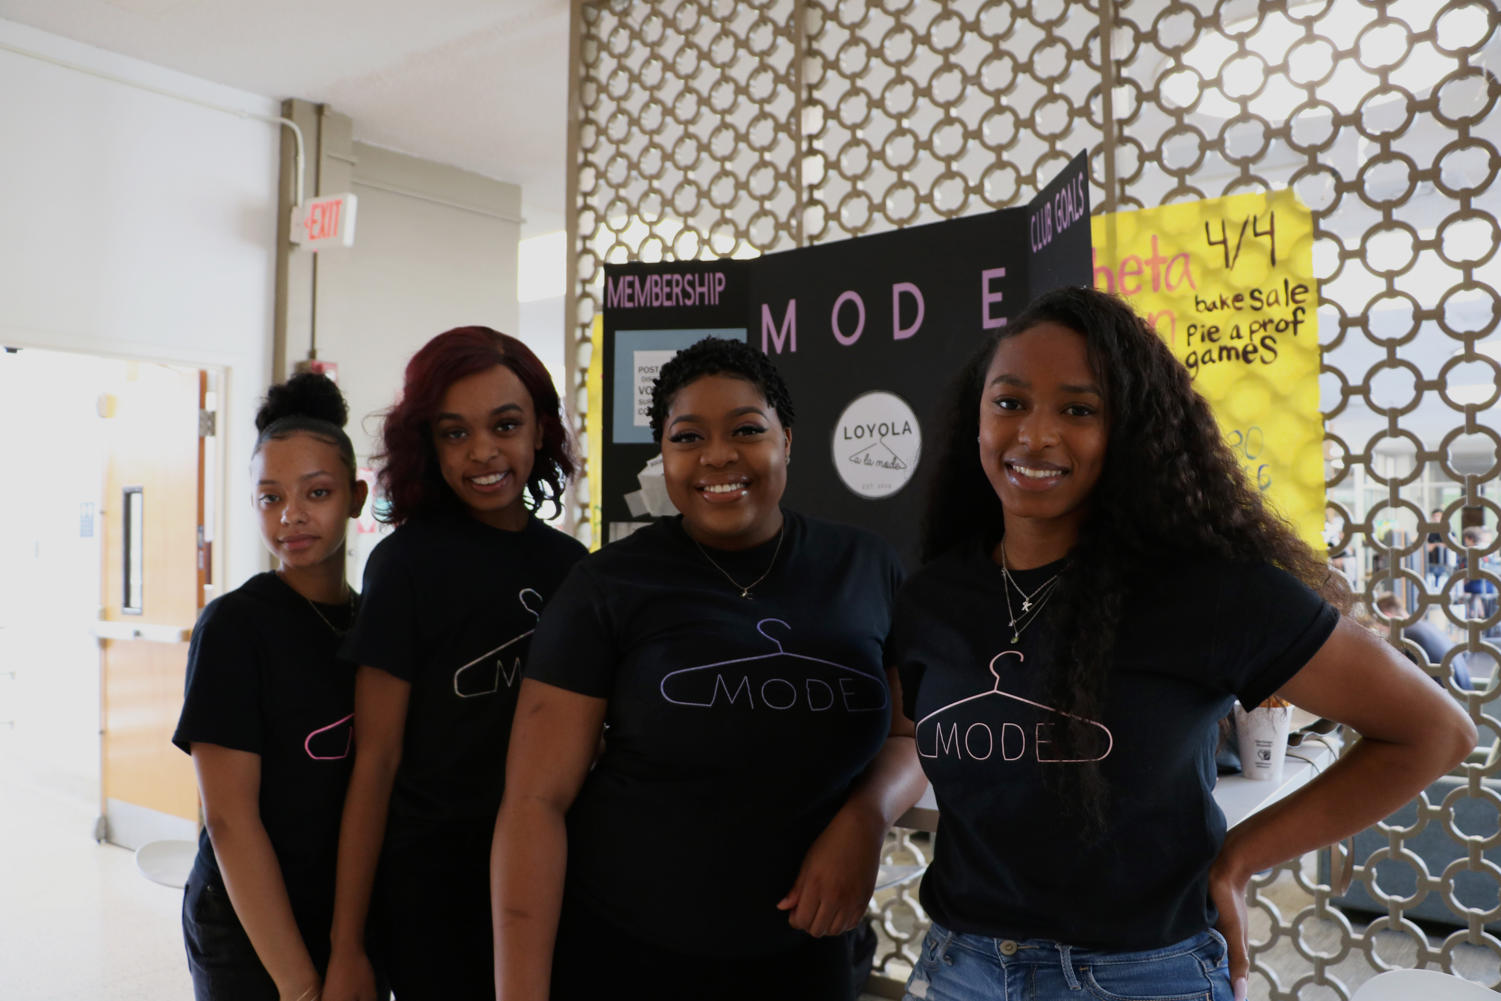 From left to right: Zyon Barbosa Monteiro, Destiny Martin, Bria Permenter, and Kendall Wilson. Photo credit: Hannah Renton